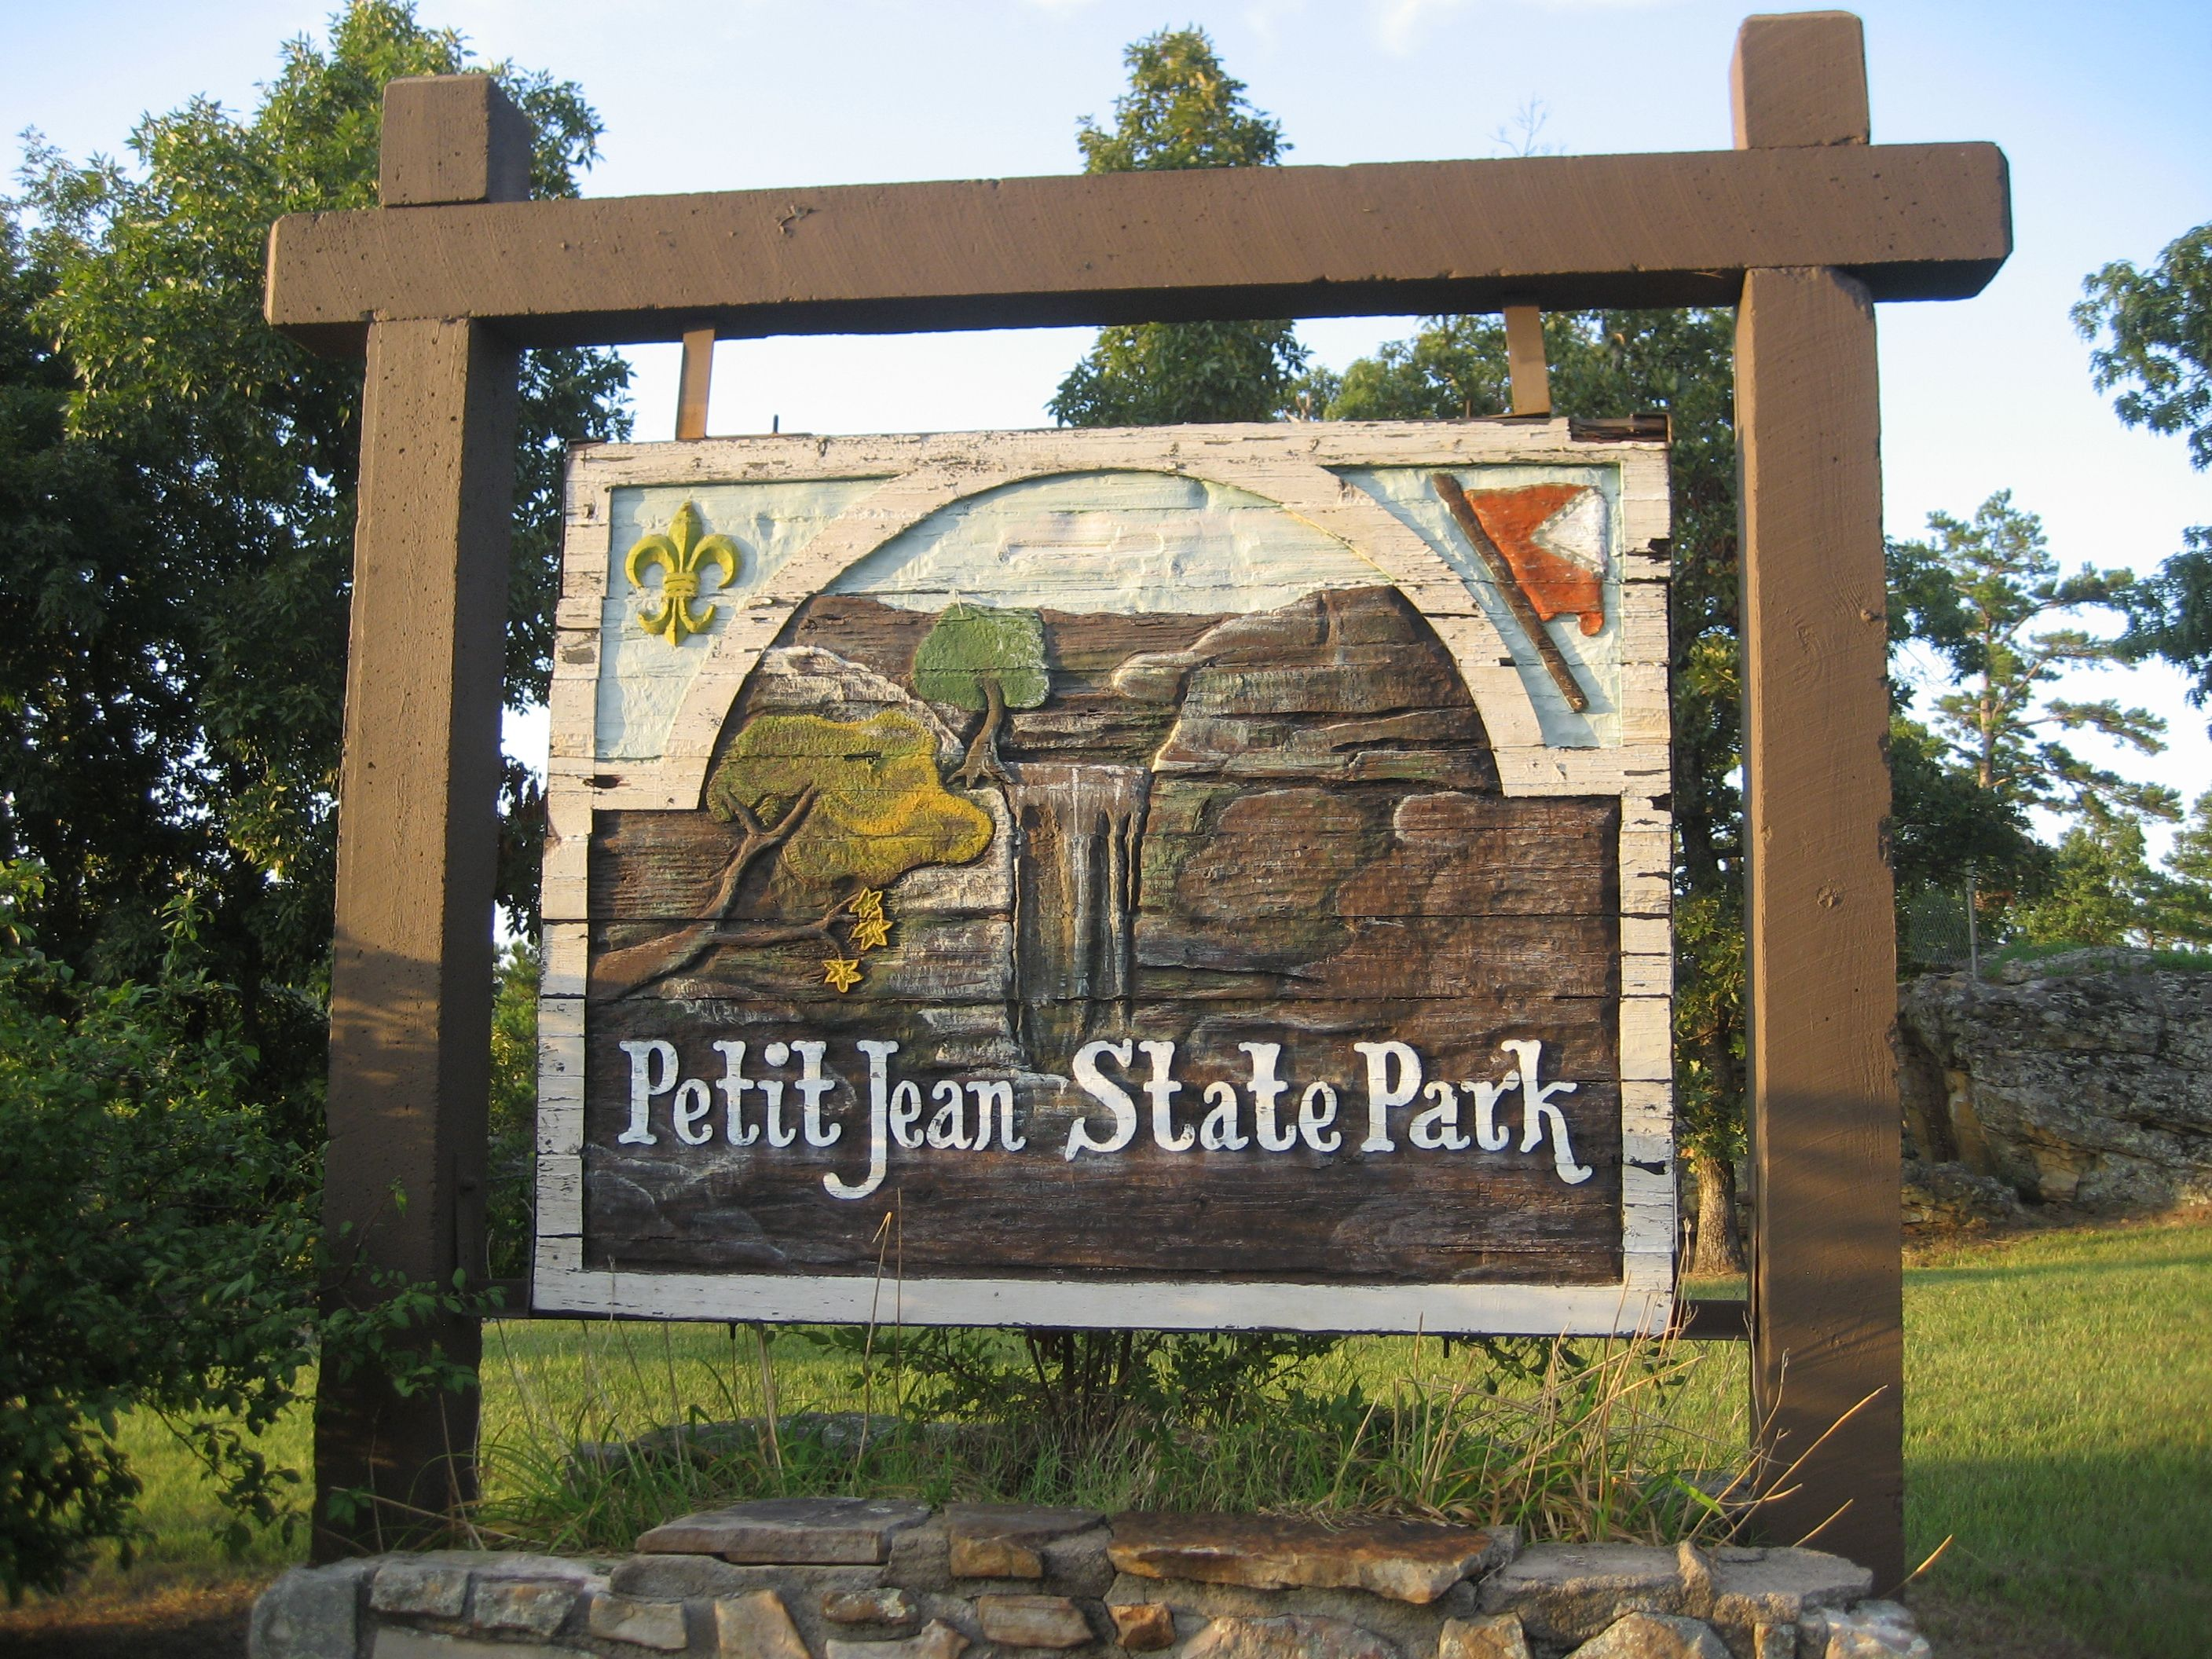 petit jean state park arkansas so hot and humid but one. Black Bedroom Furniture Sets. Home Design Ideas